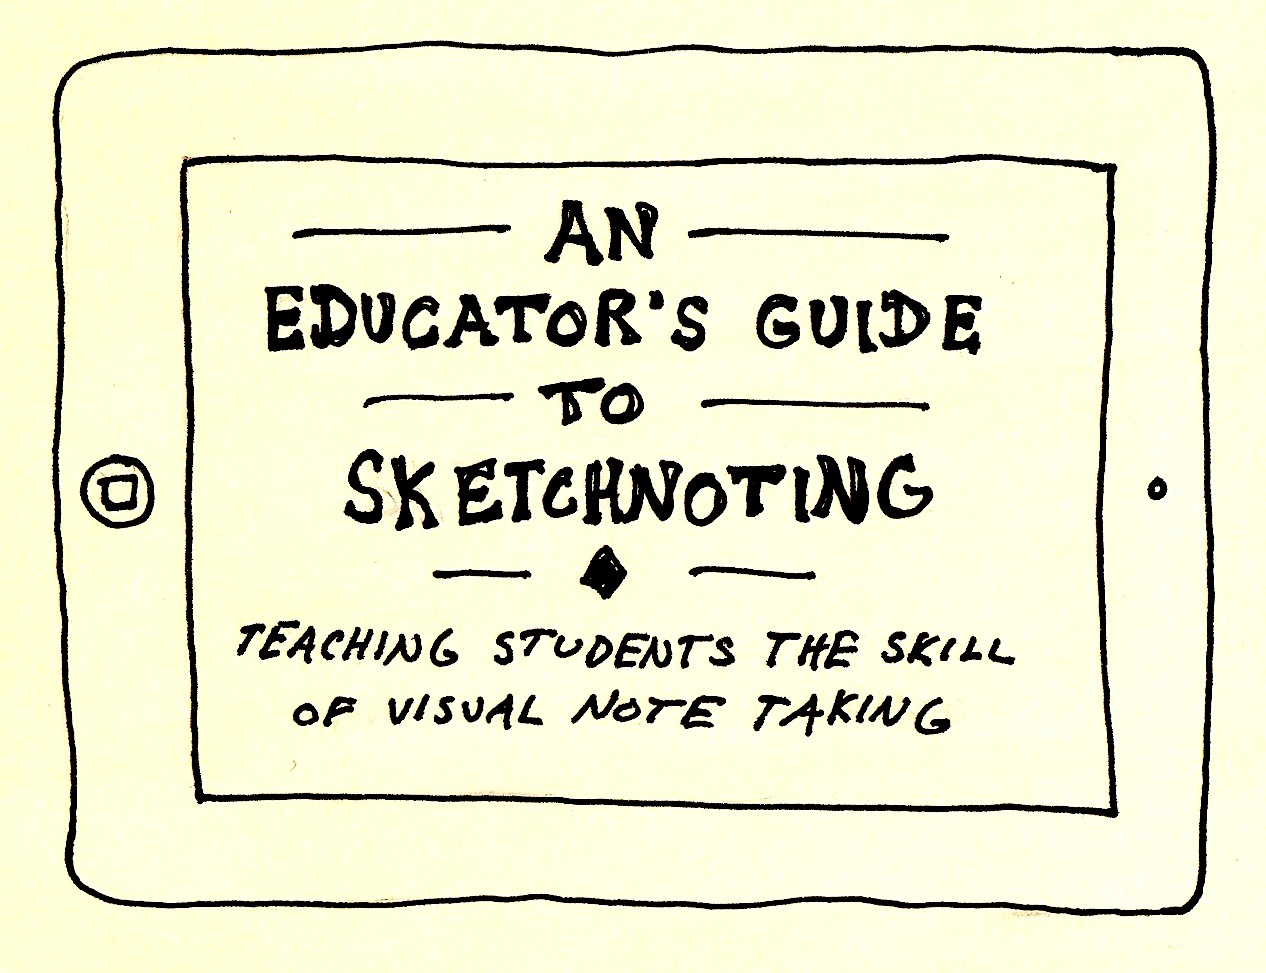 An Educator's Guide